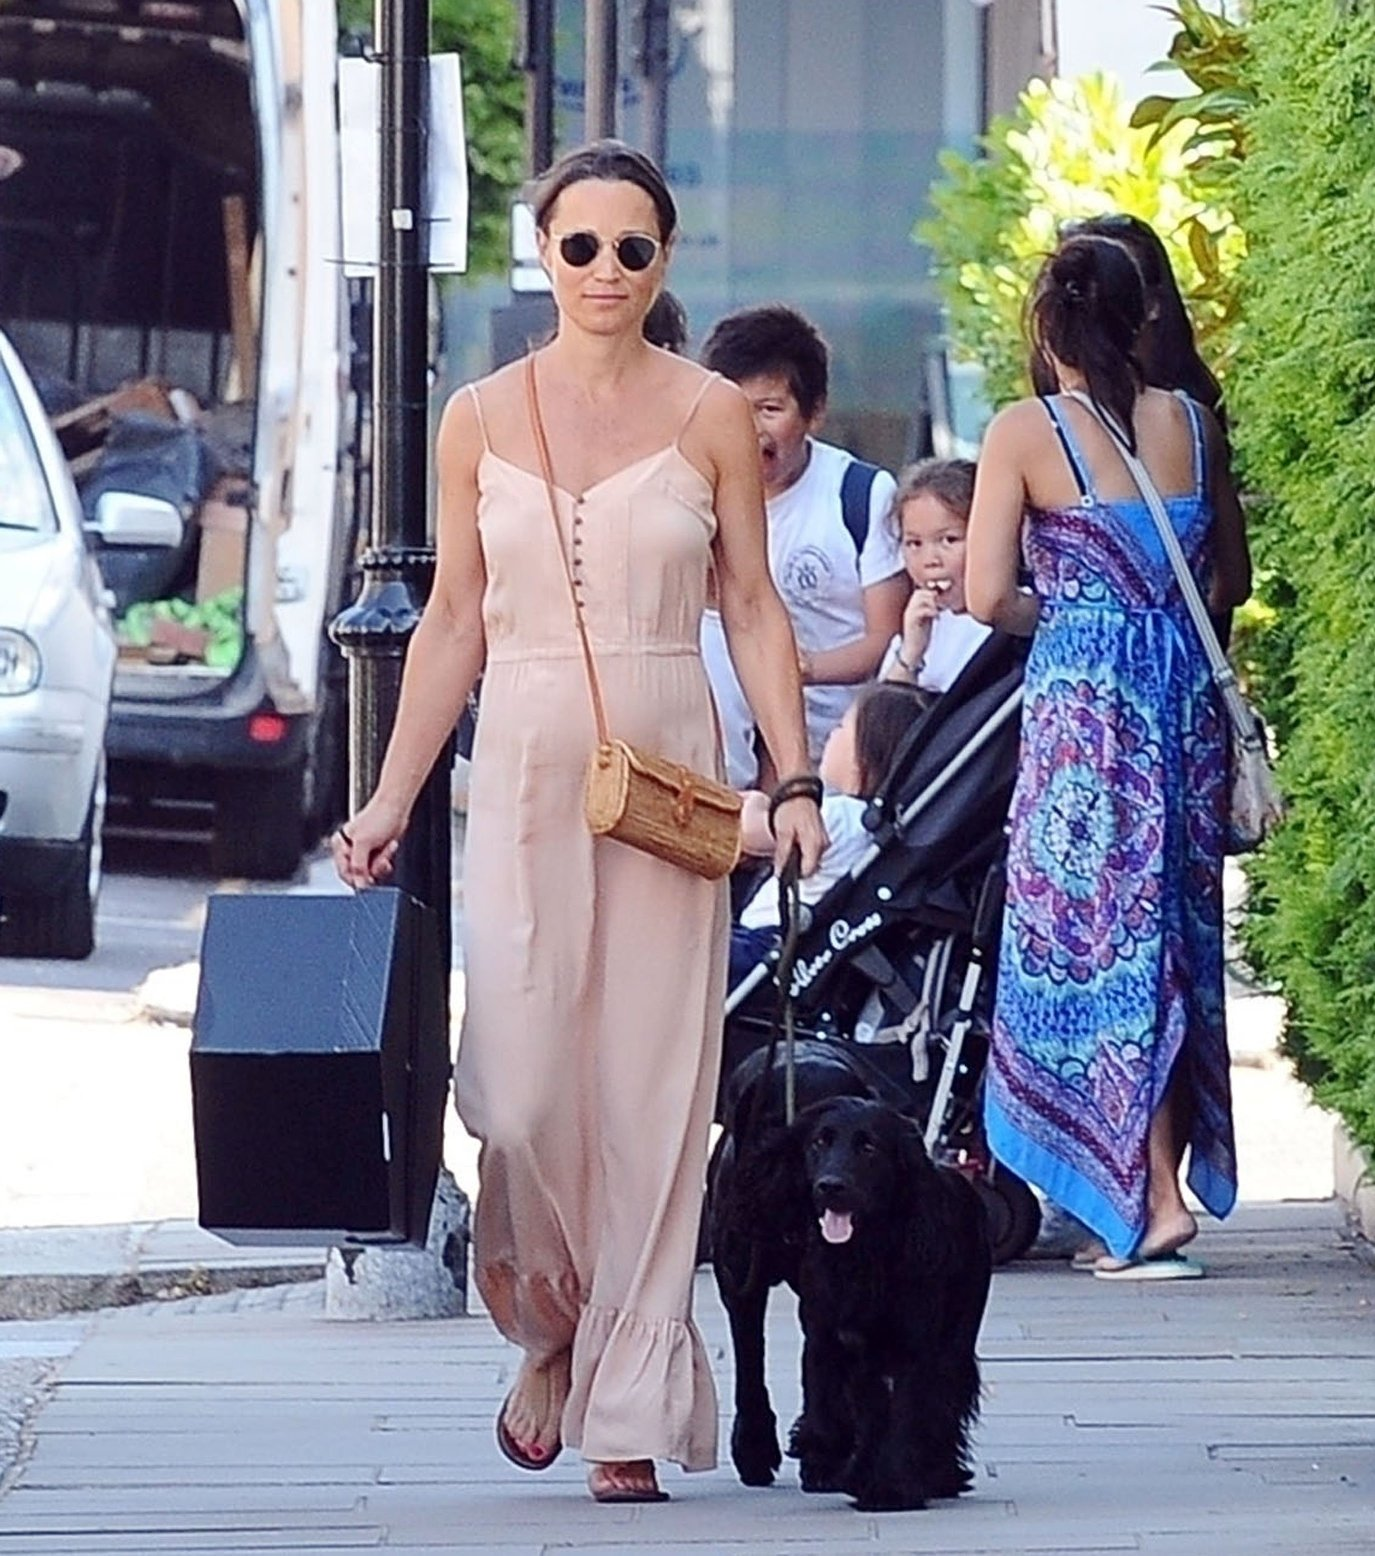 BGUK_1279146 - London, UNITED KINGDOM  - *EXCLUSIVE*  - *WEB MUST CALL FOR PRICING*  Mum-to-be Pippa Matthews looks radiant during her pregnancy in the summer sunshine on the King's Road in Chelsea. Pippa who is expecting her first child with husband James Matthews is spotted walking her dog and wore a long peach dress holding a big gift box in hand.  Pictured: Pippa Matthews - Pippa Middleton    *UK Clients - Pictures Containing Children Please Pixelate Face Prior To Publication*, Image: 376859433, License: Rights-managed, Restrictions: , Model Release: no, Credit line: Profimedia, Xposurephotos